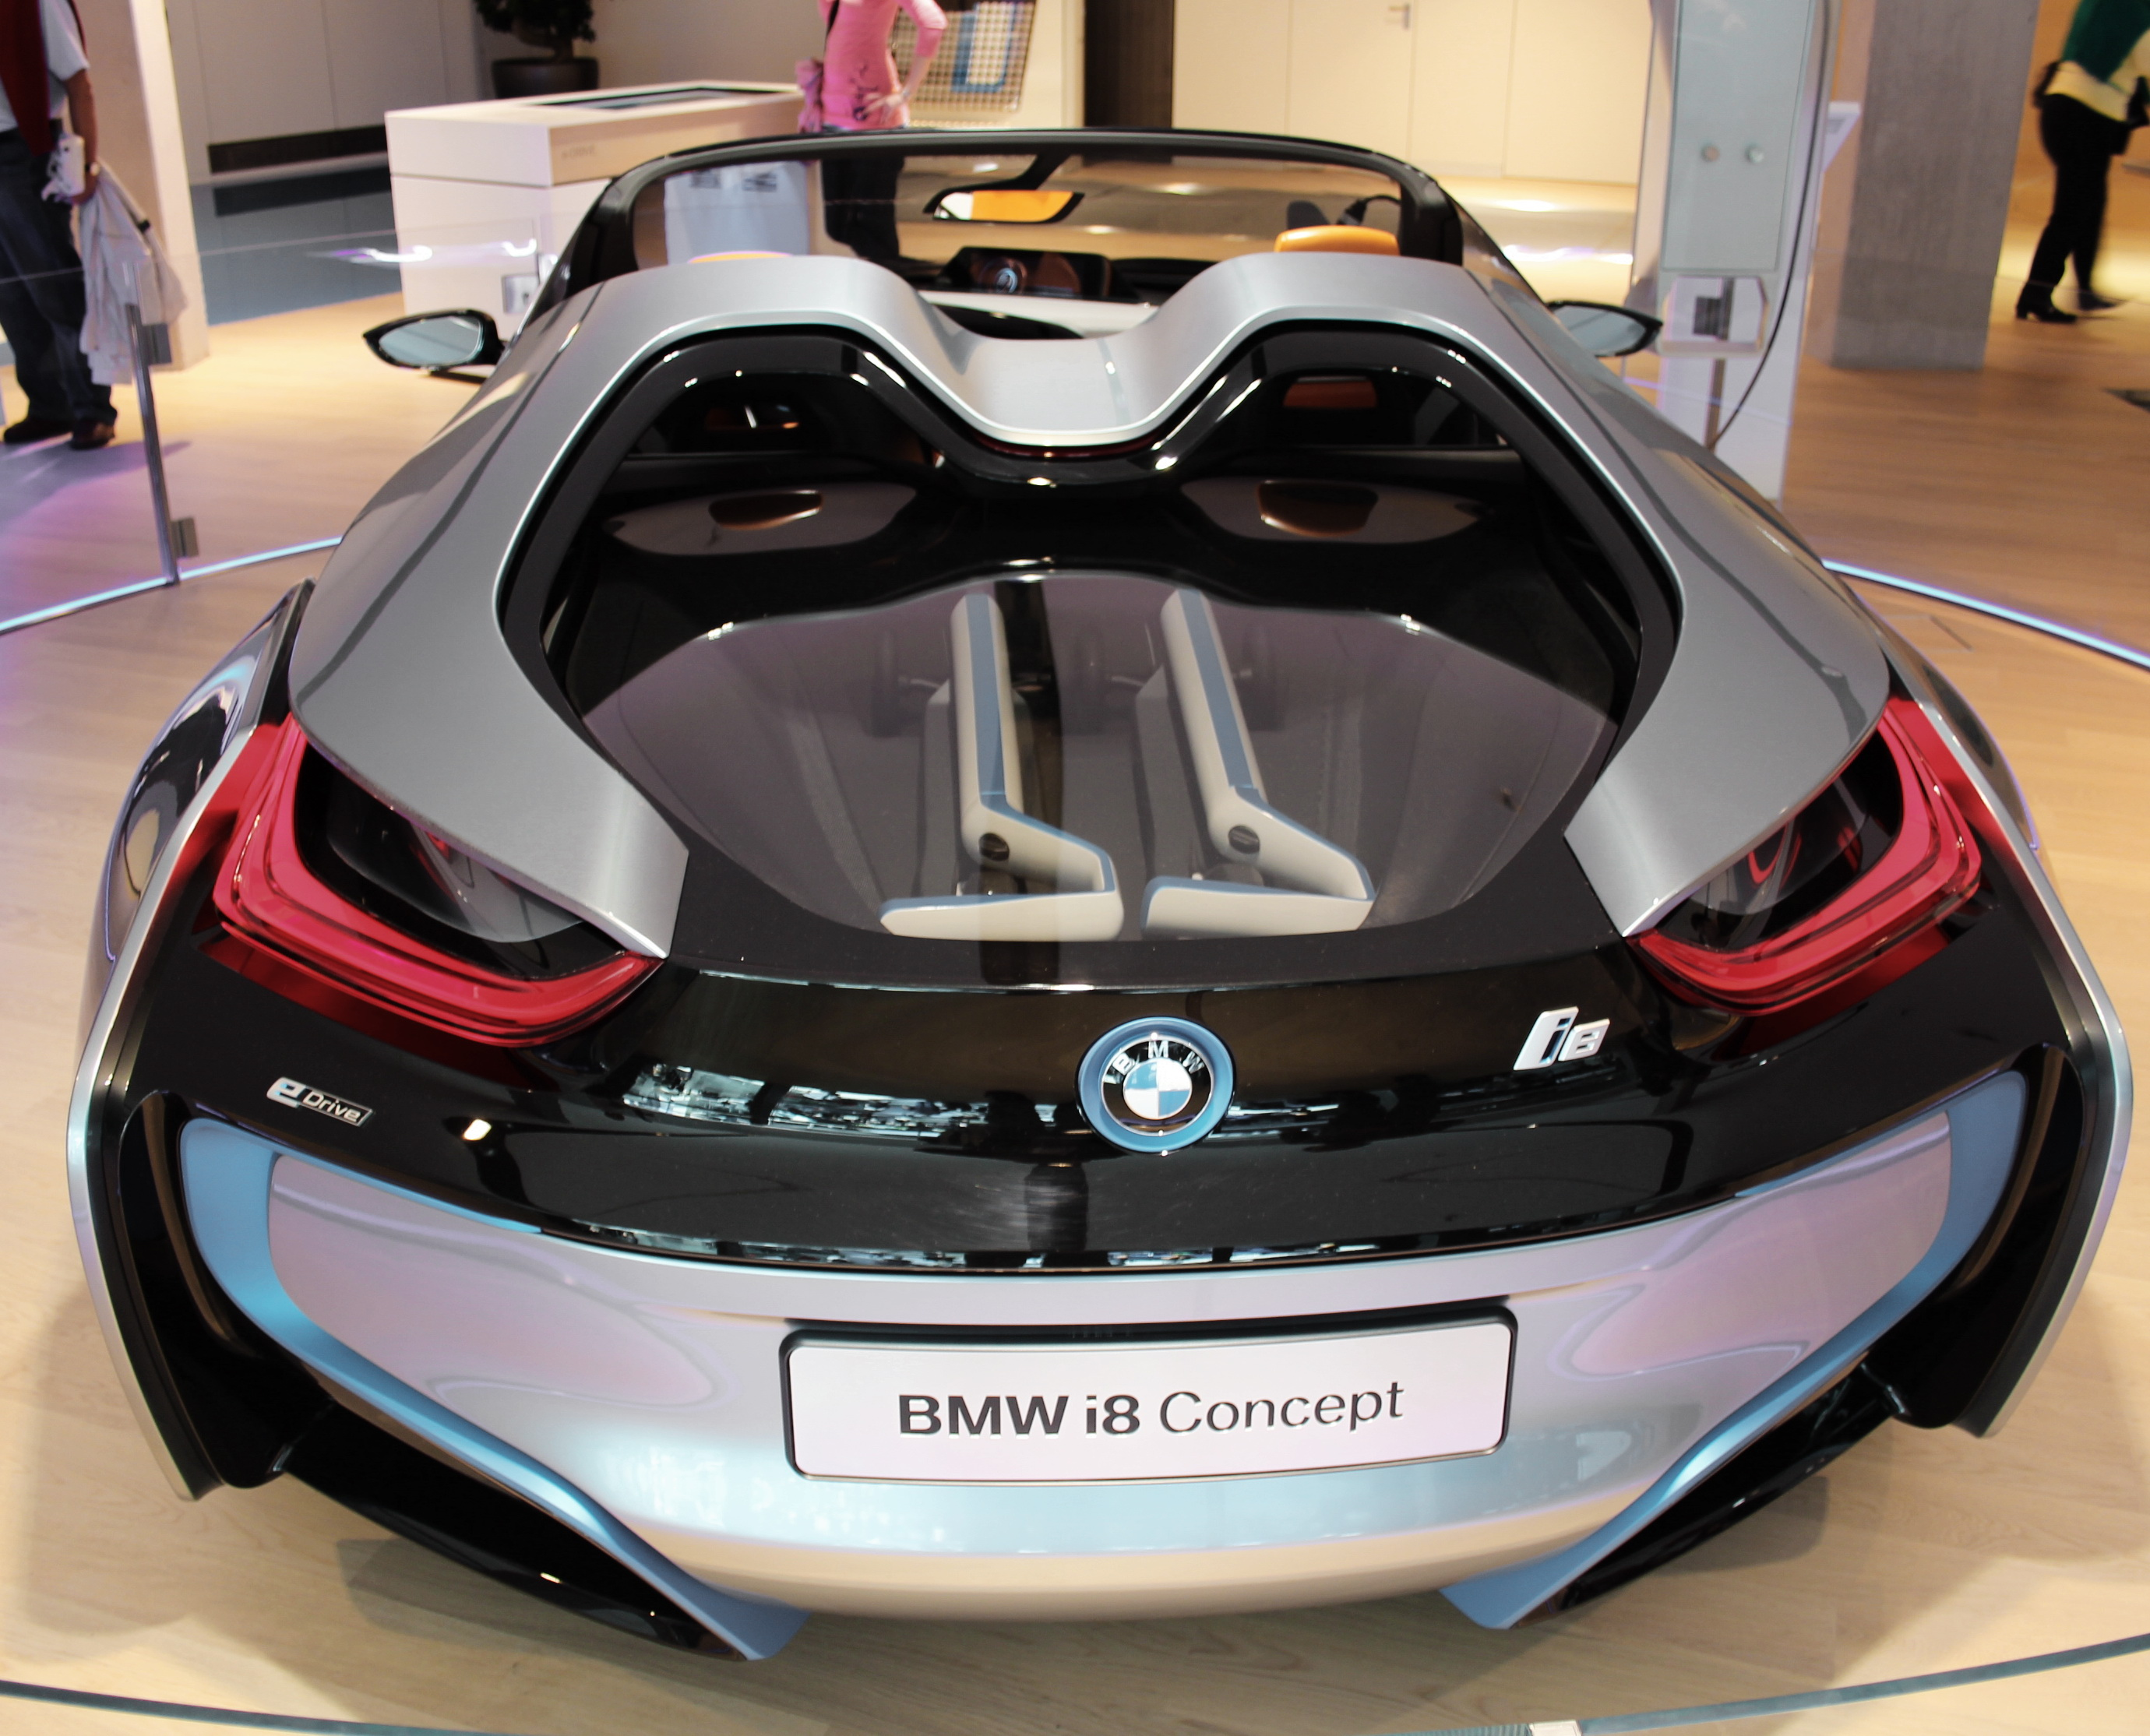 File:BMW i8 Spider Concept.JPG - Wikimedia Commons